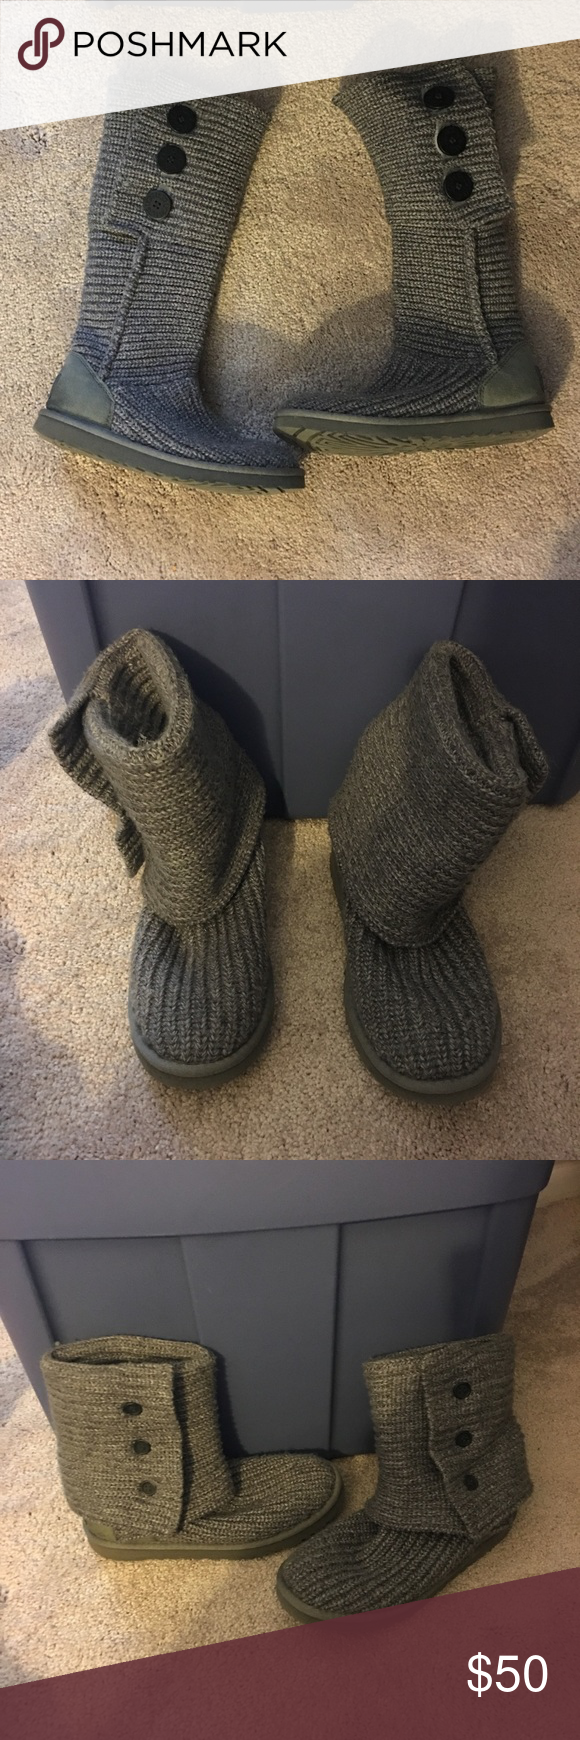 Ugg Classic Cardy Boots in Grey Ugg classic cardy boots. They're grey...size 7 (fits women's normal size 8). They've been worn, but have been taken care of and are in pretty good shape. Lots of wear left in these. Very comfortable boots. Can be worn up or folded down. UGG Shoes